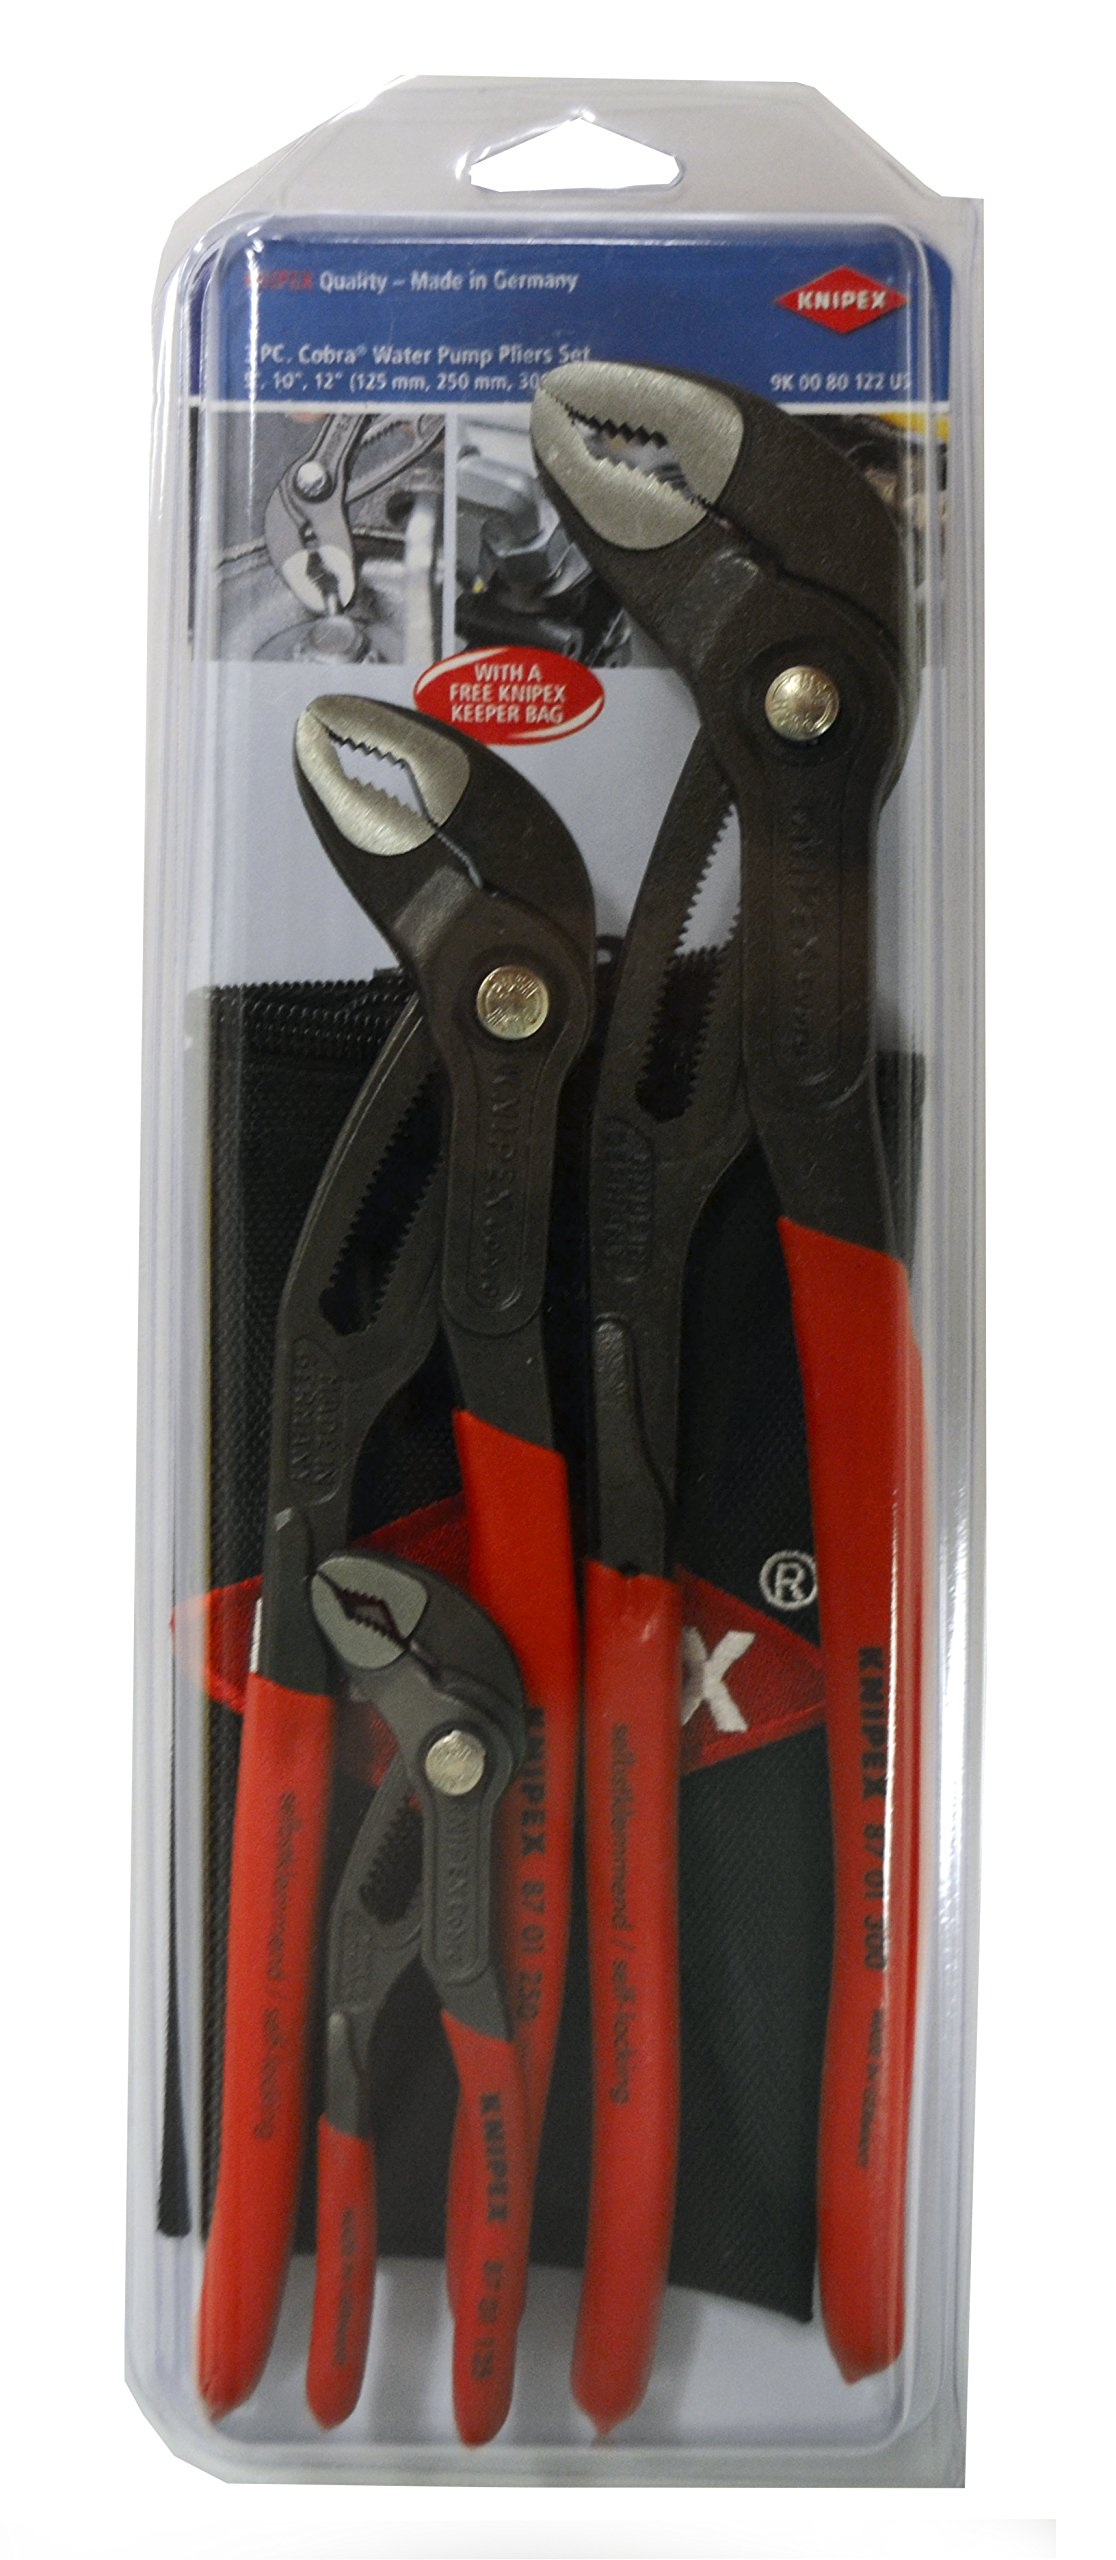 Knipex Tools 9K 00 80 122 US Cobra Pliers Tool Set with Keeper Pouch (3 Piece) by KNIPEX Tools